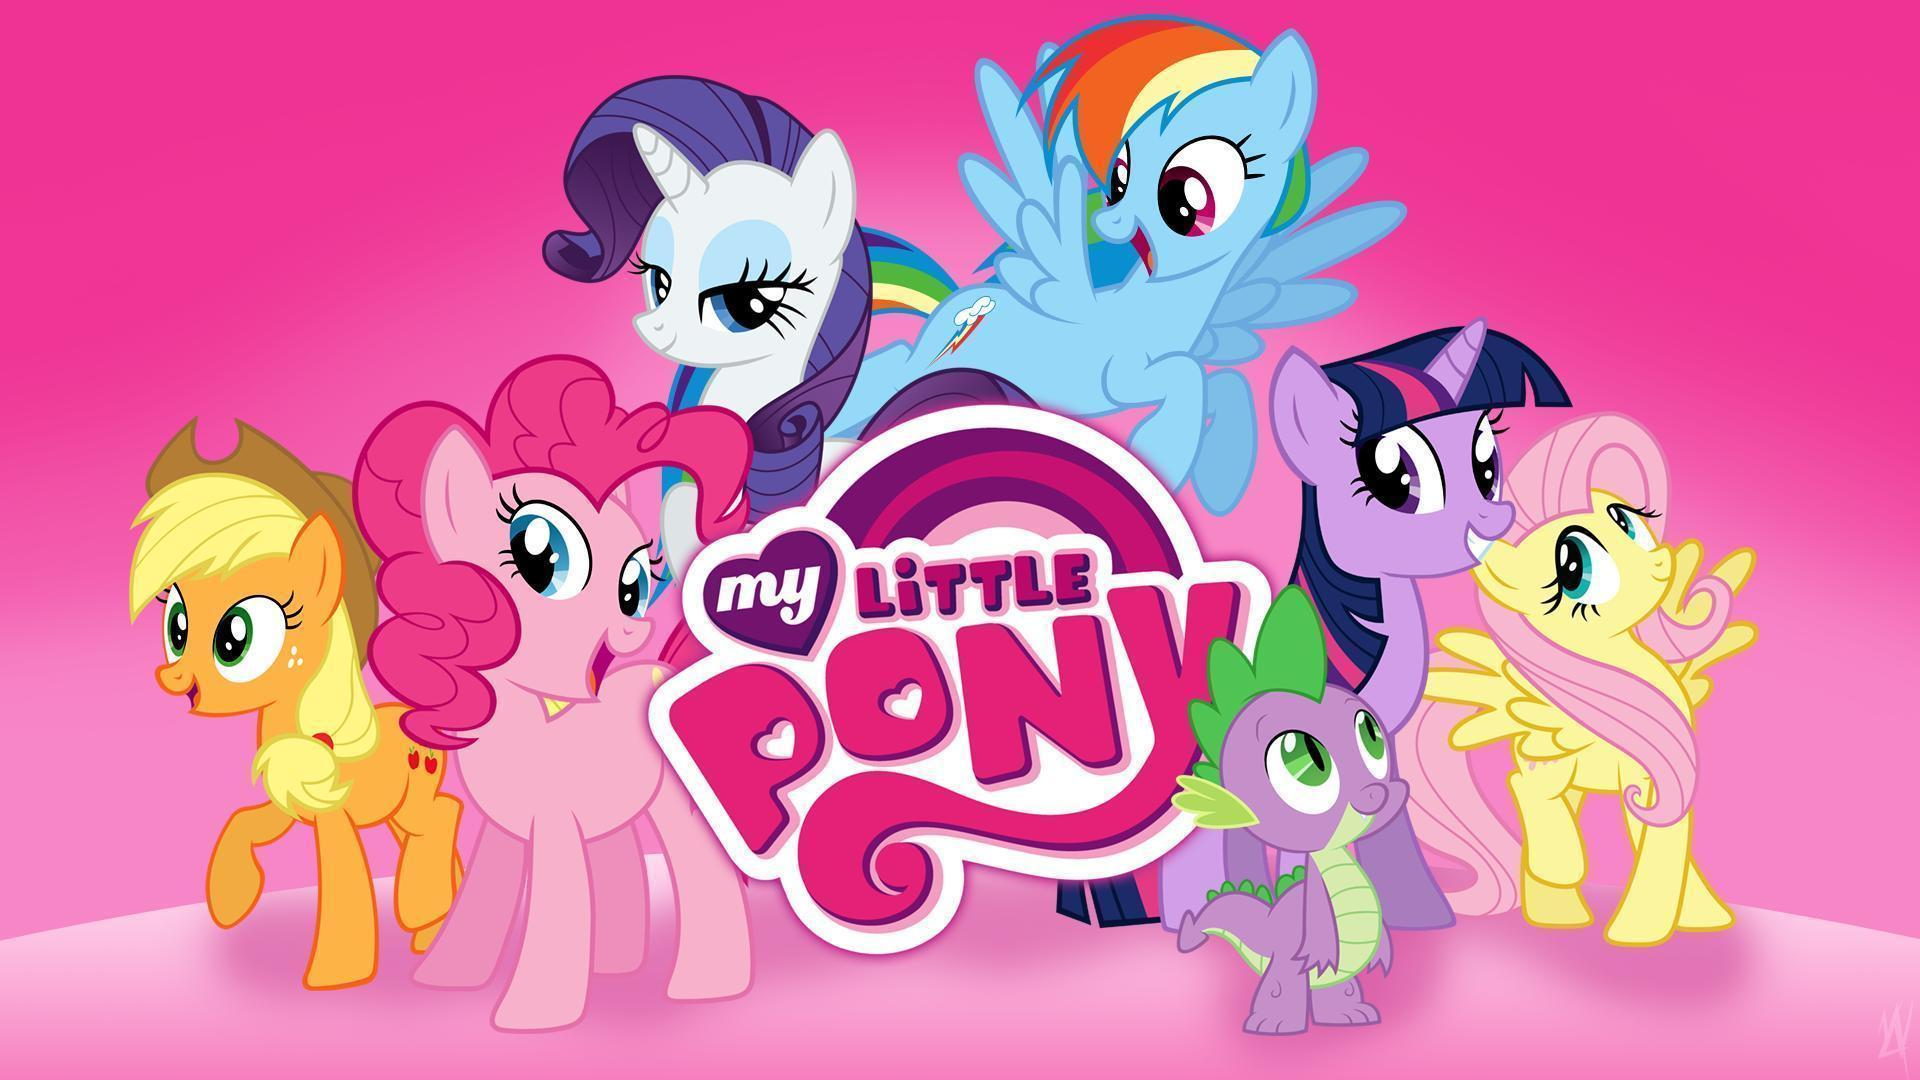 My Little Pony - She Reads All Day Win Screensaver by aethepony on ...